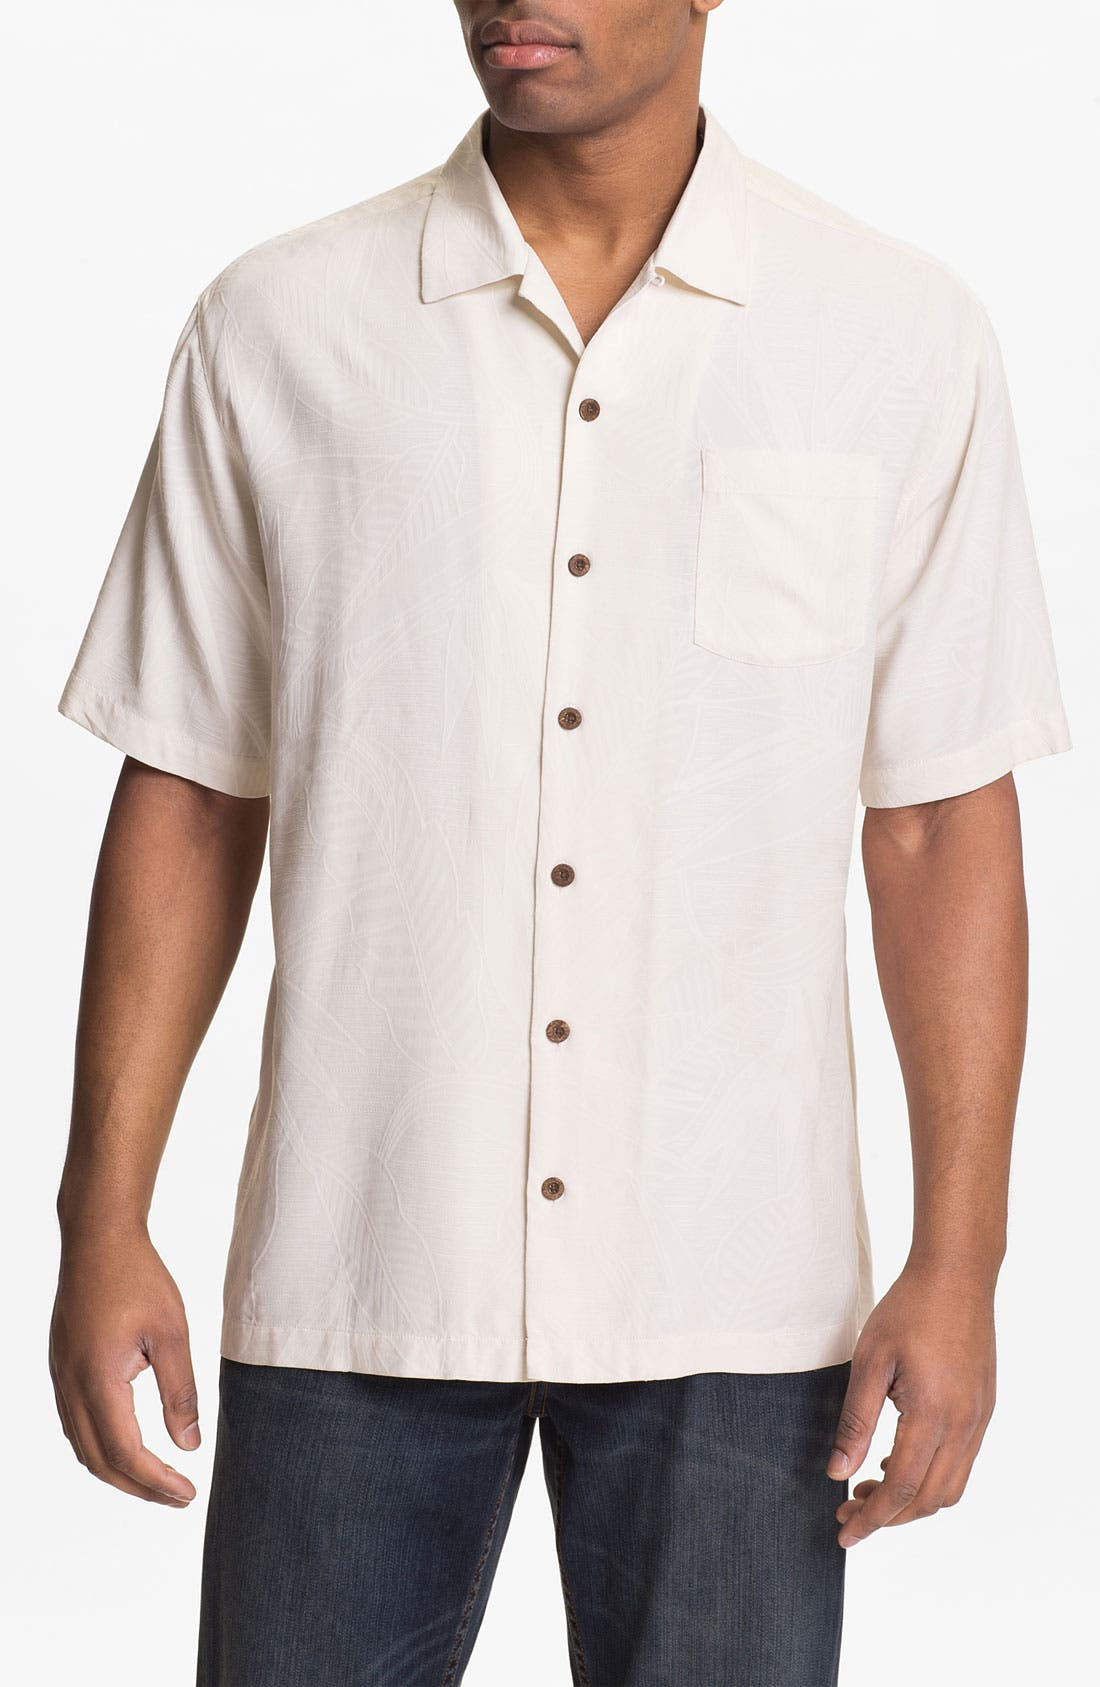 Alternate Image 1 Selected - Tommy Bahama 'Bird It Through the Grapevine' Campshirt (Big & Tall)